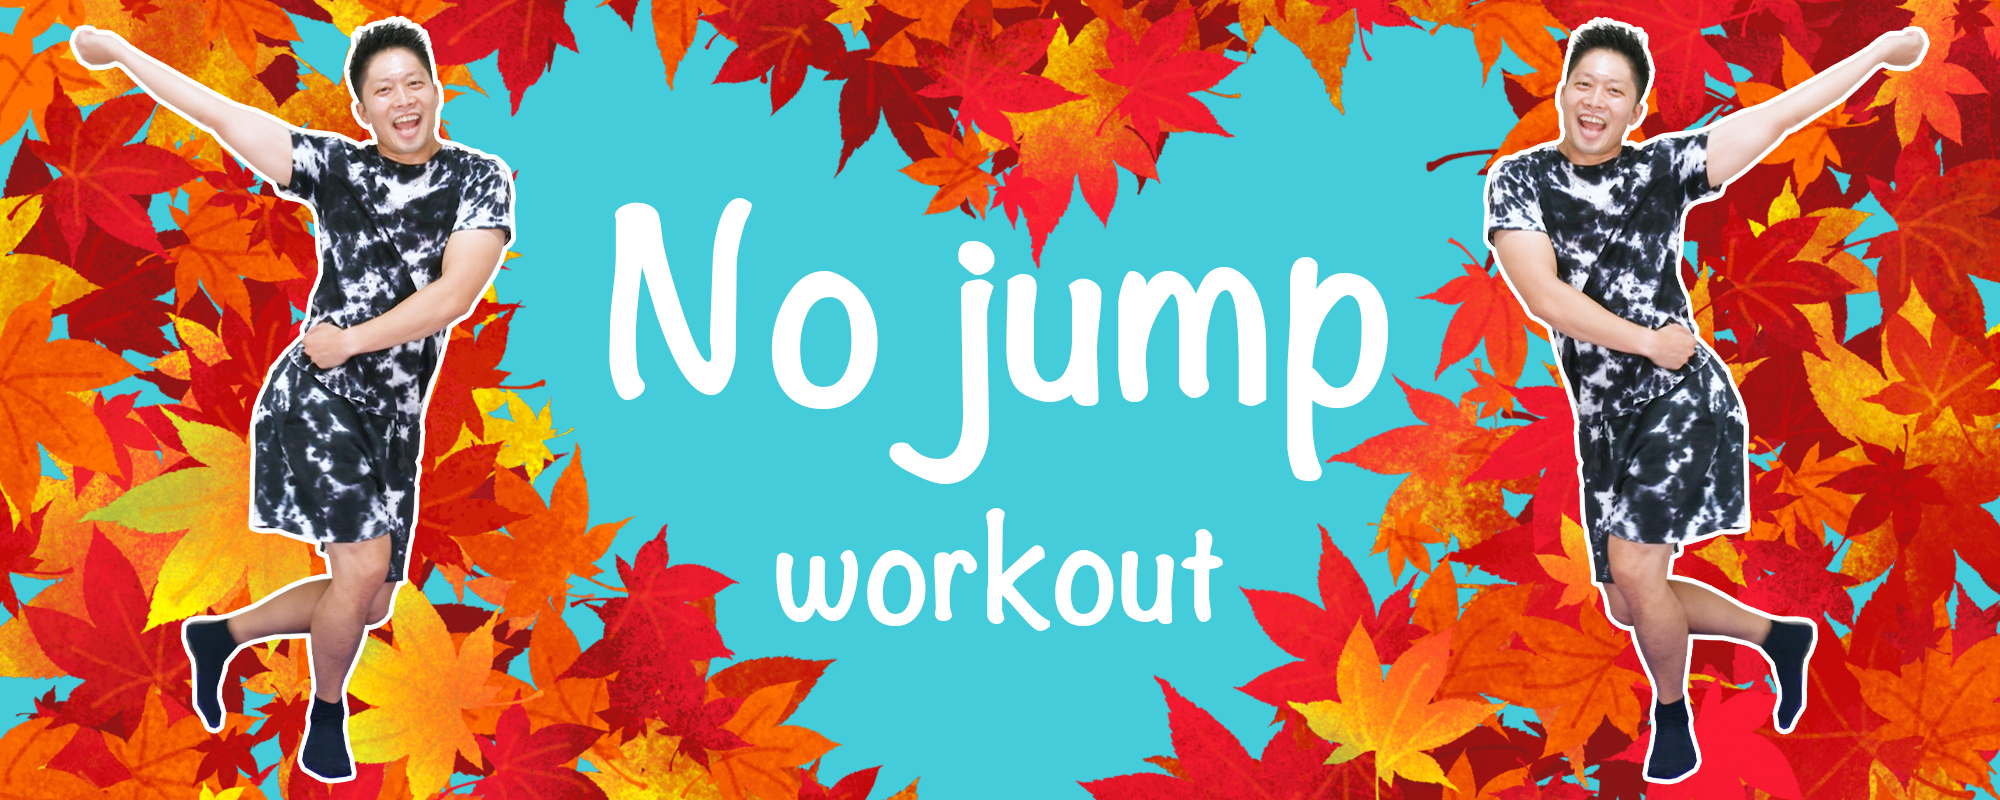 No jump program (even if you have back ache, you can do it)